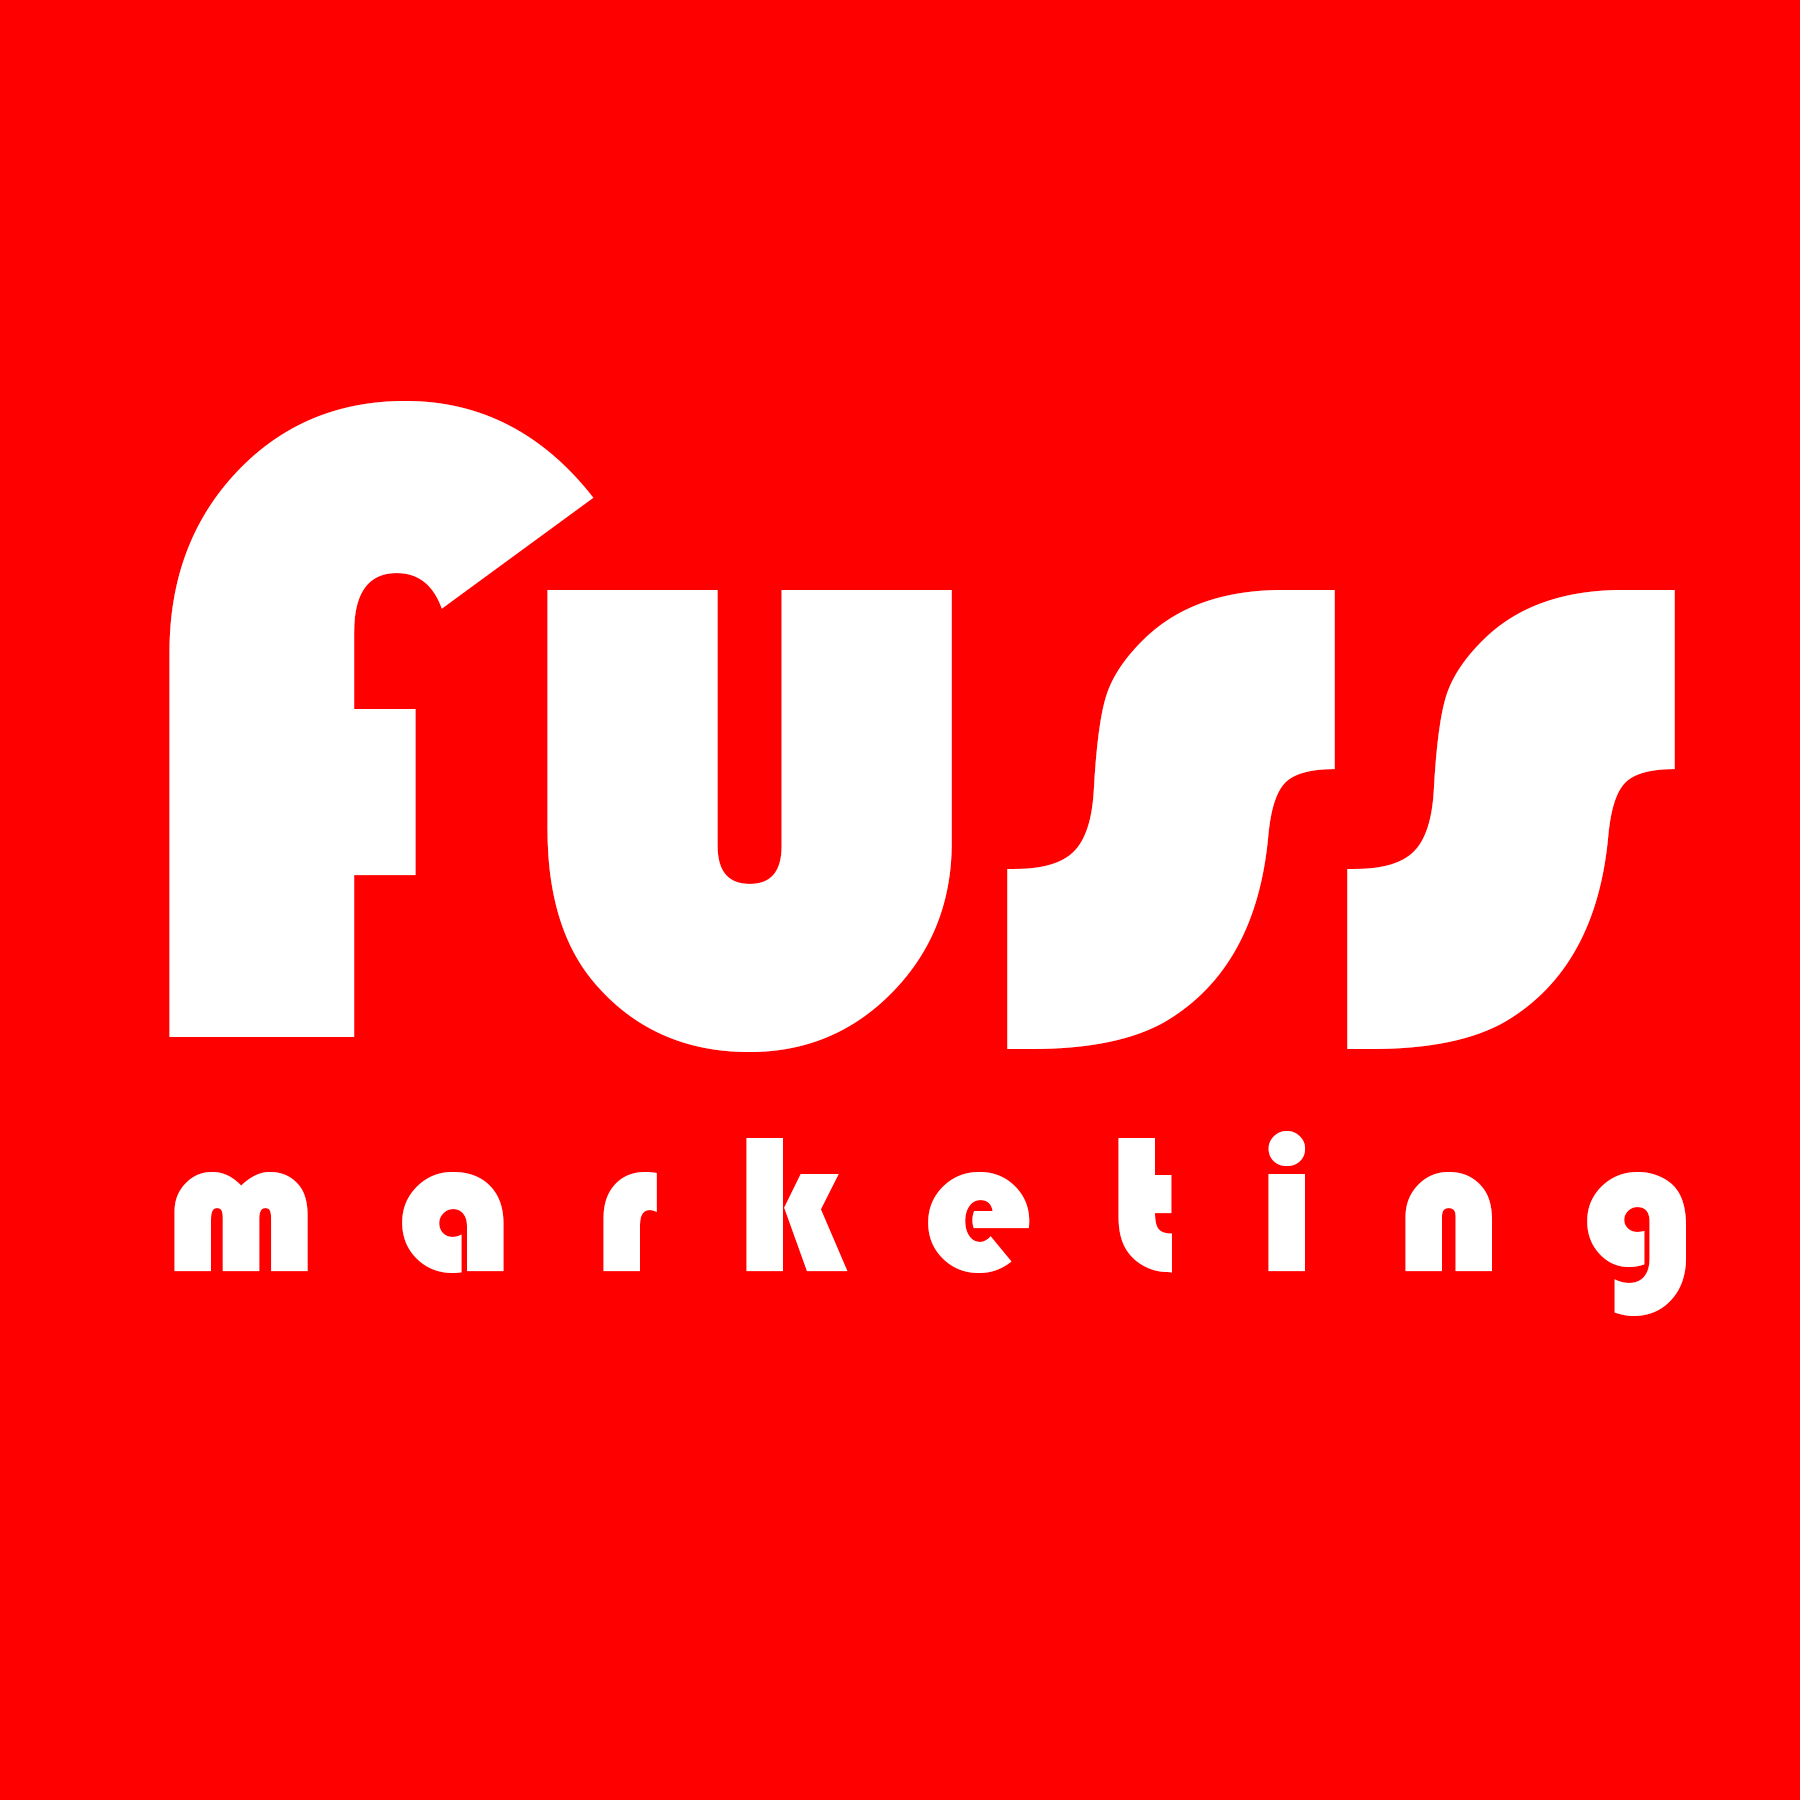 Fuss-Logo_Simple-WhiteOnRed.jpg